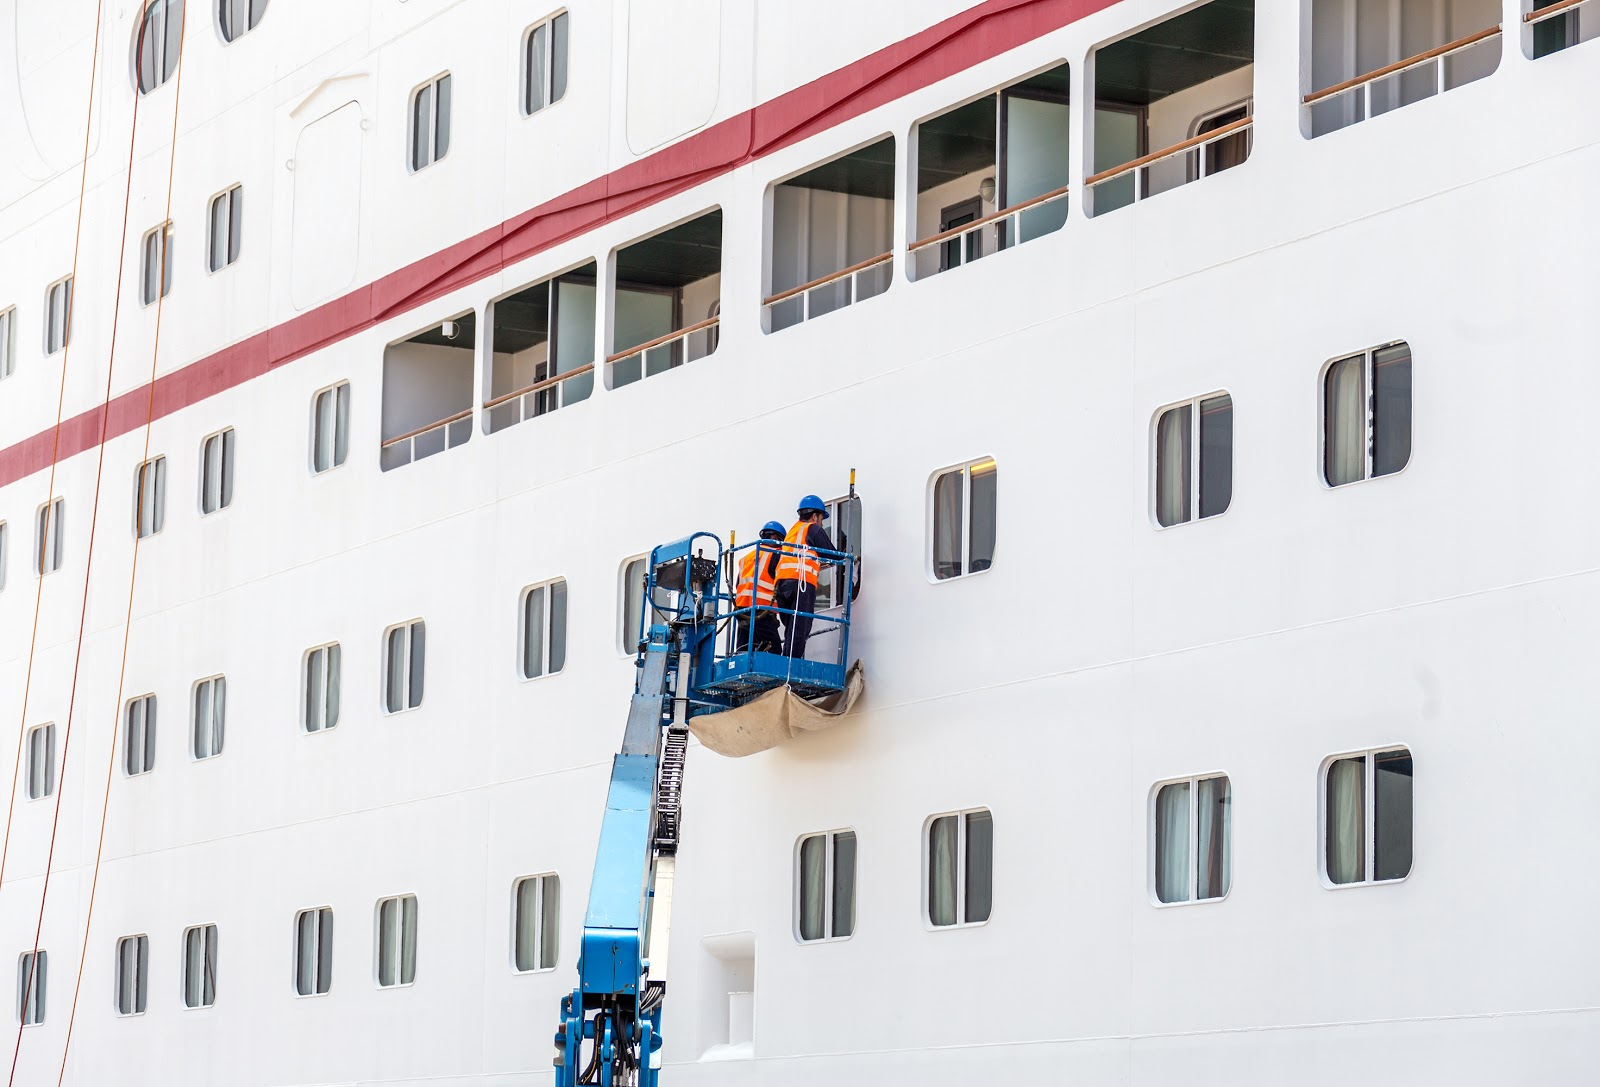 Royal Caribbean internship: Ship crews cleaning the windows